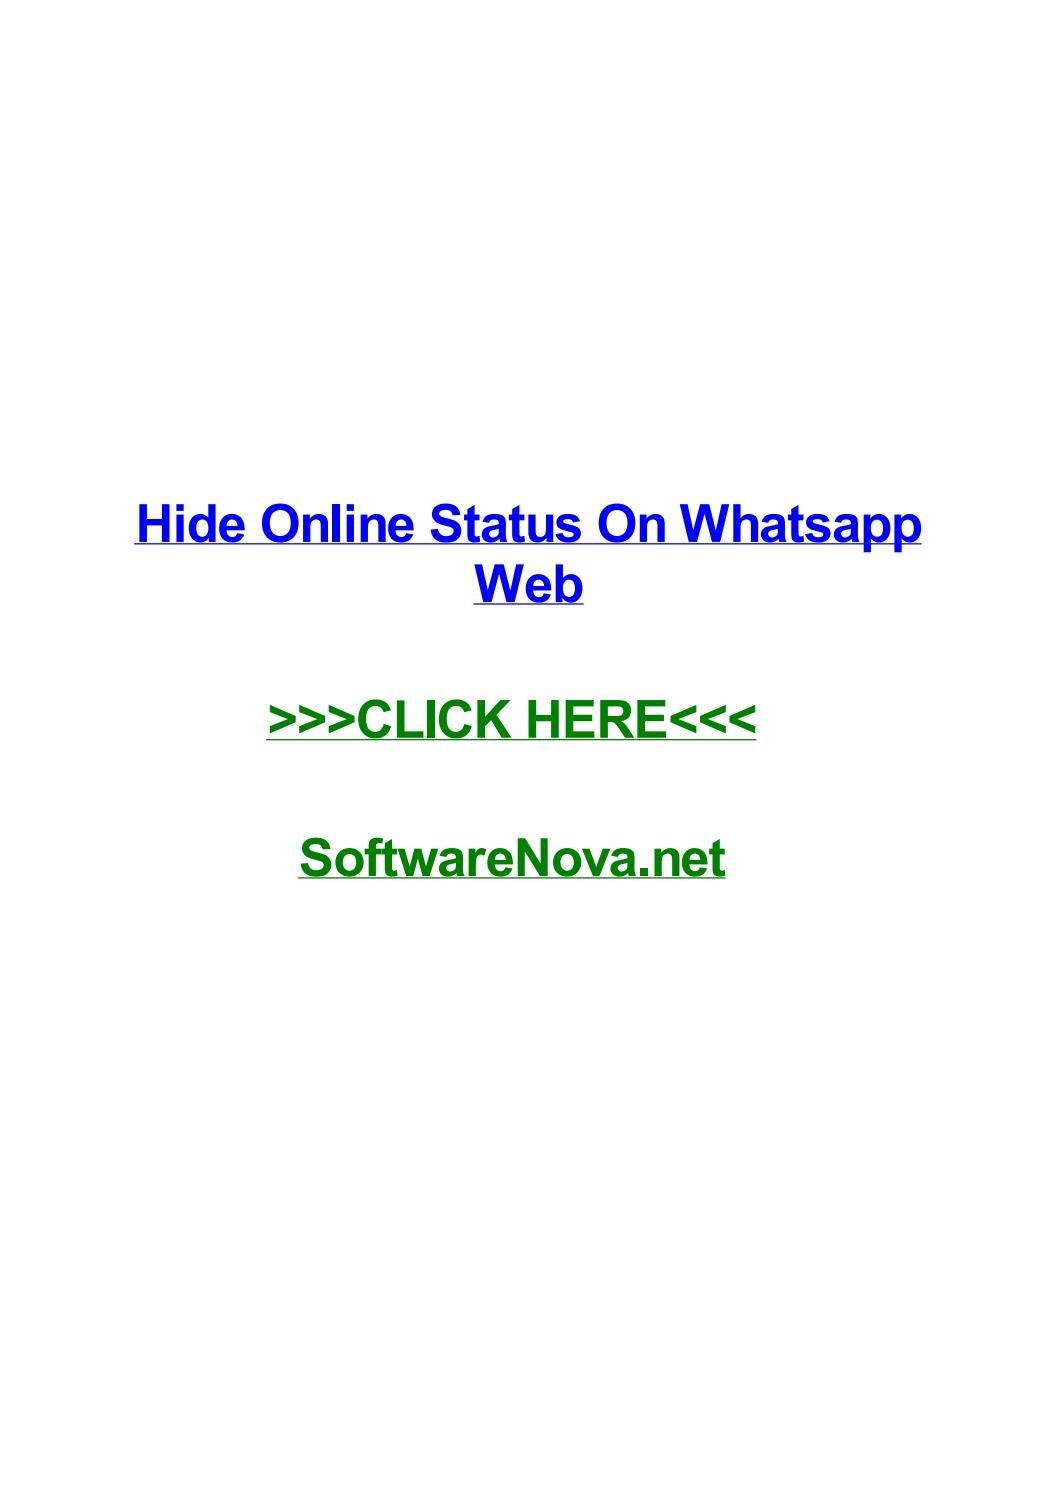 Hide Online Status On Whatsapp Web By Mikeatry Issuu